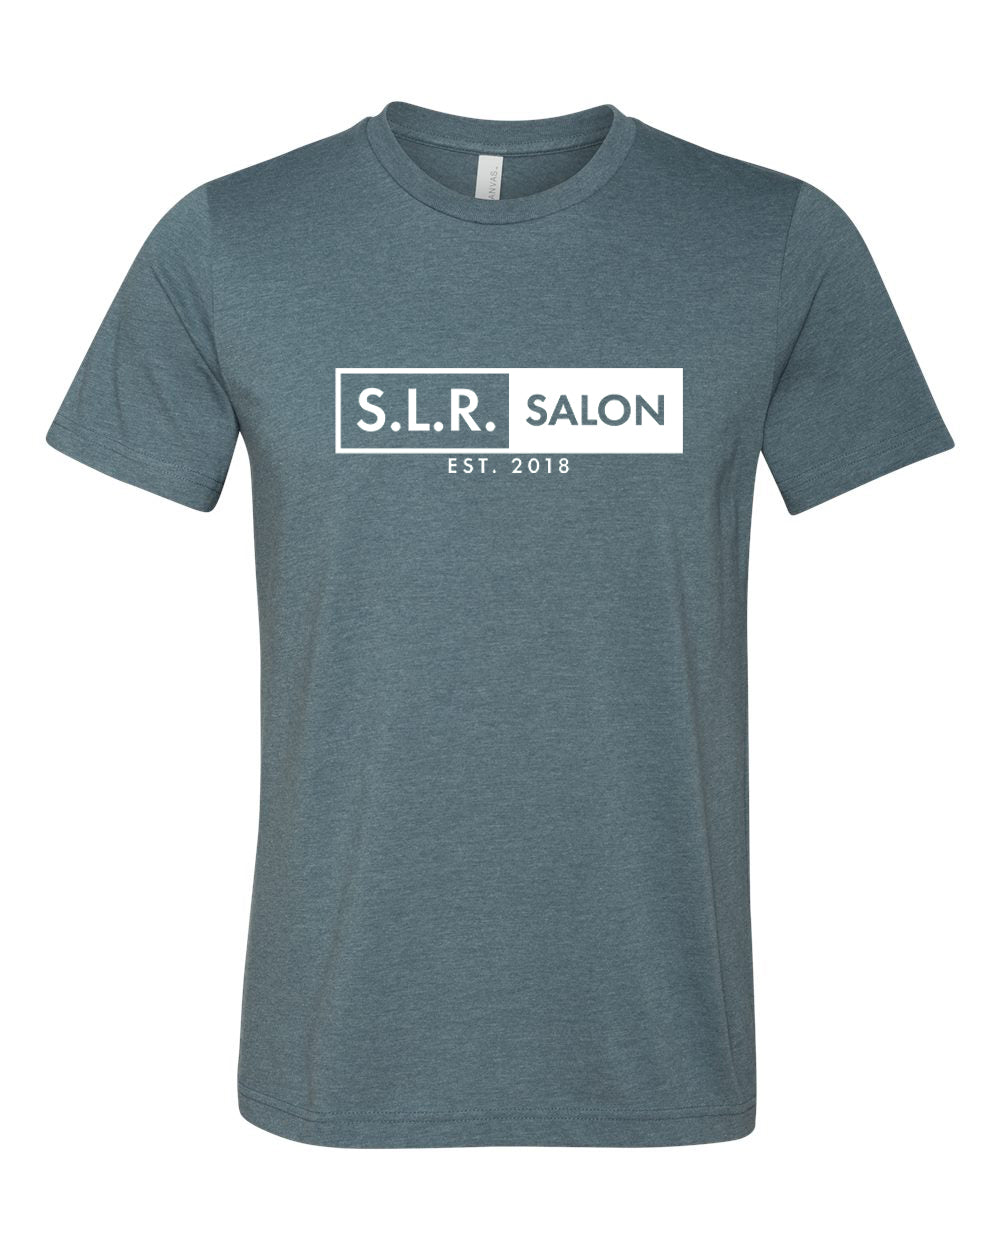 S.L.R. Salon Short Sleeve T-Shirt